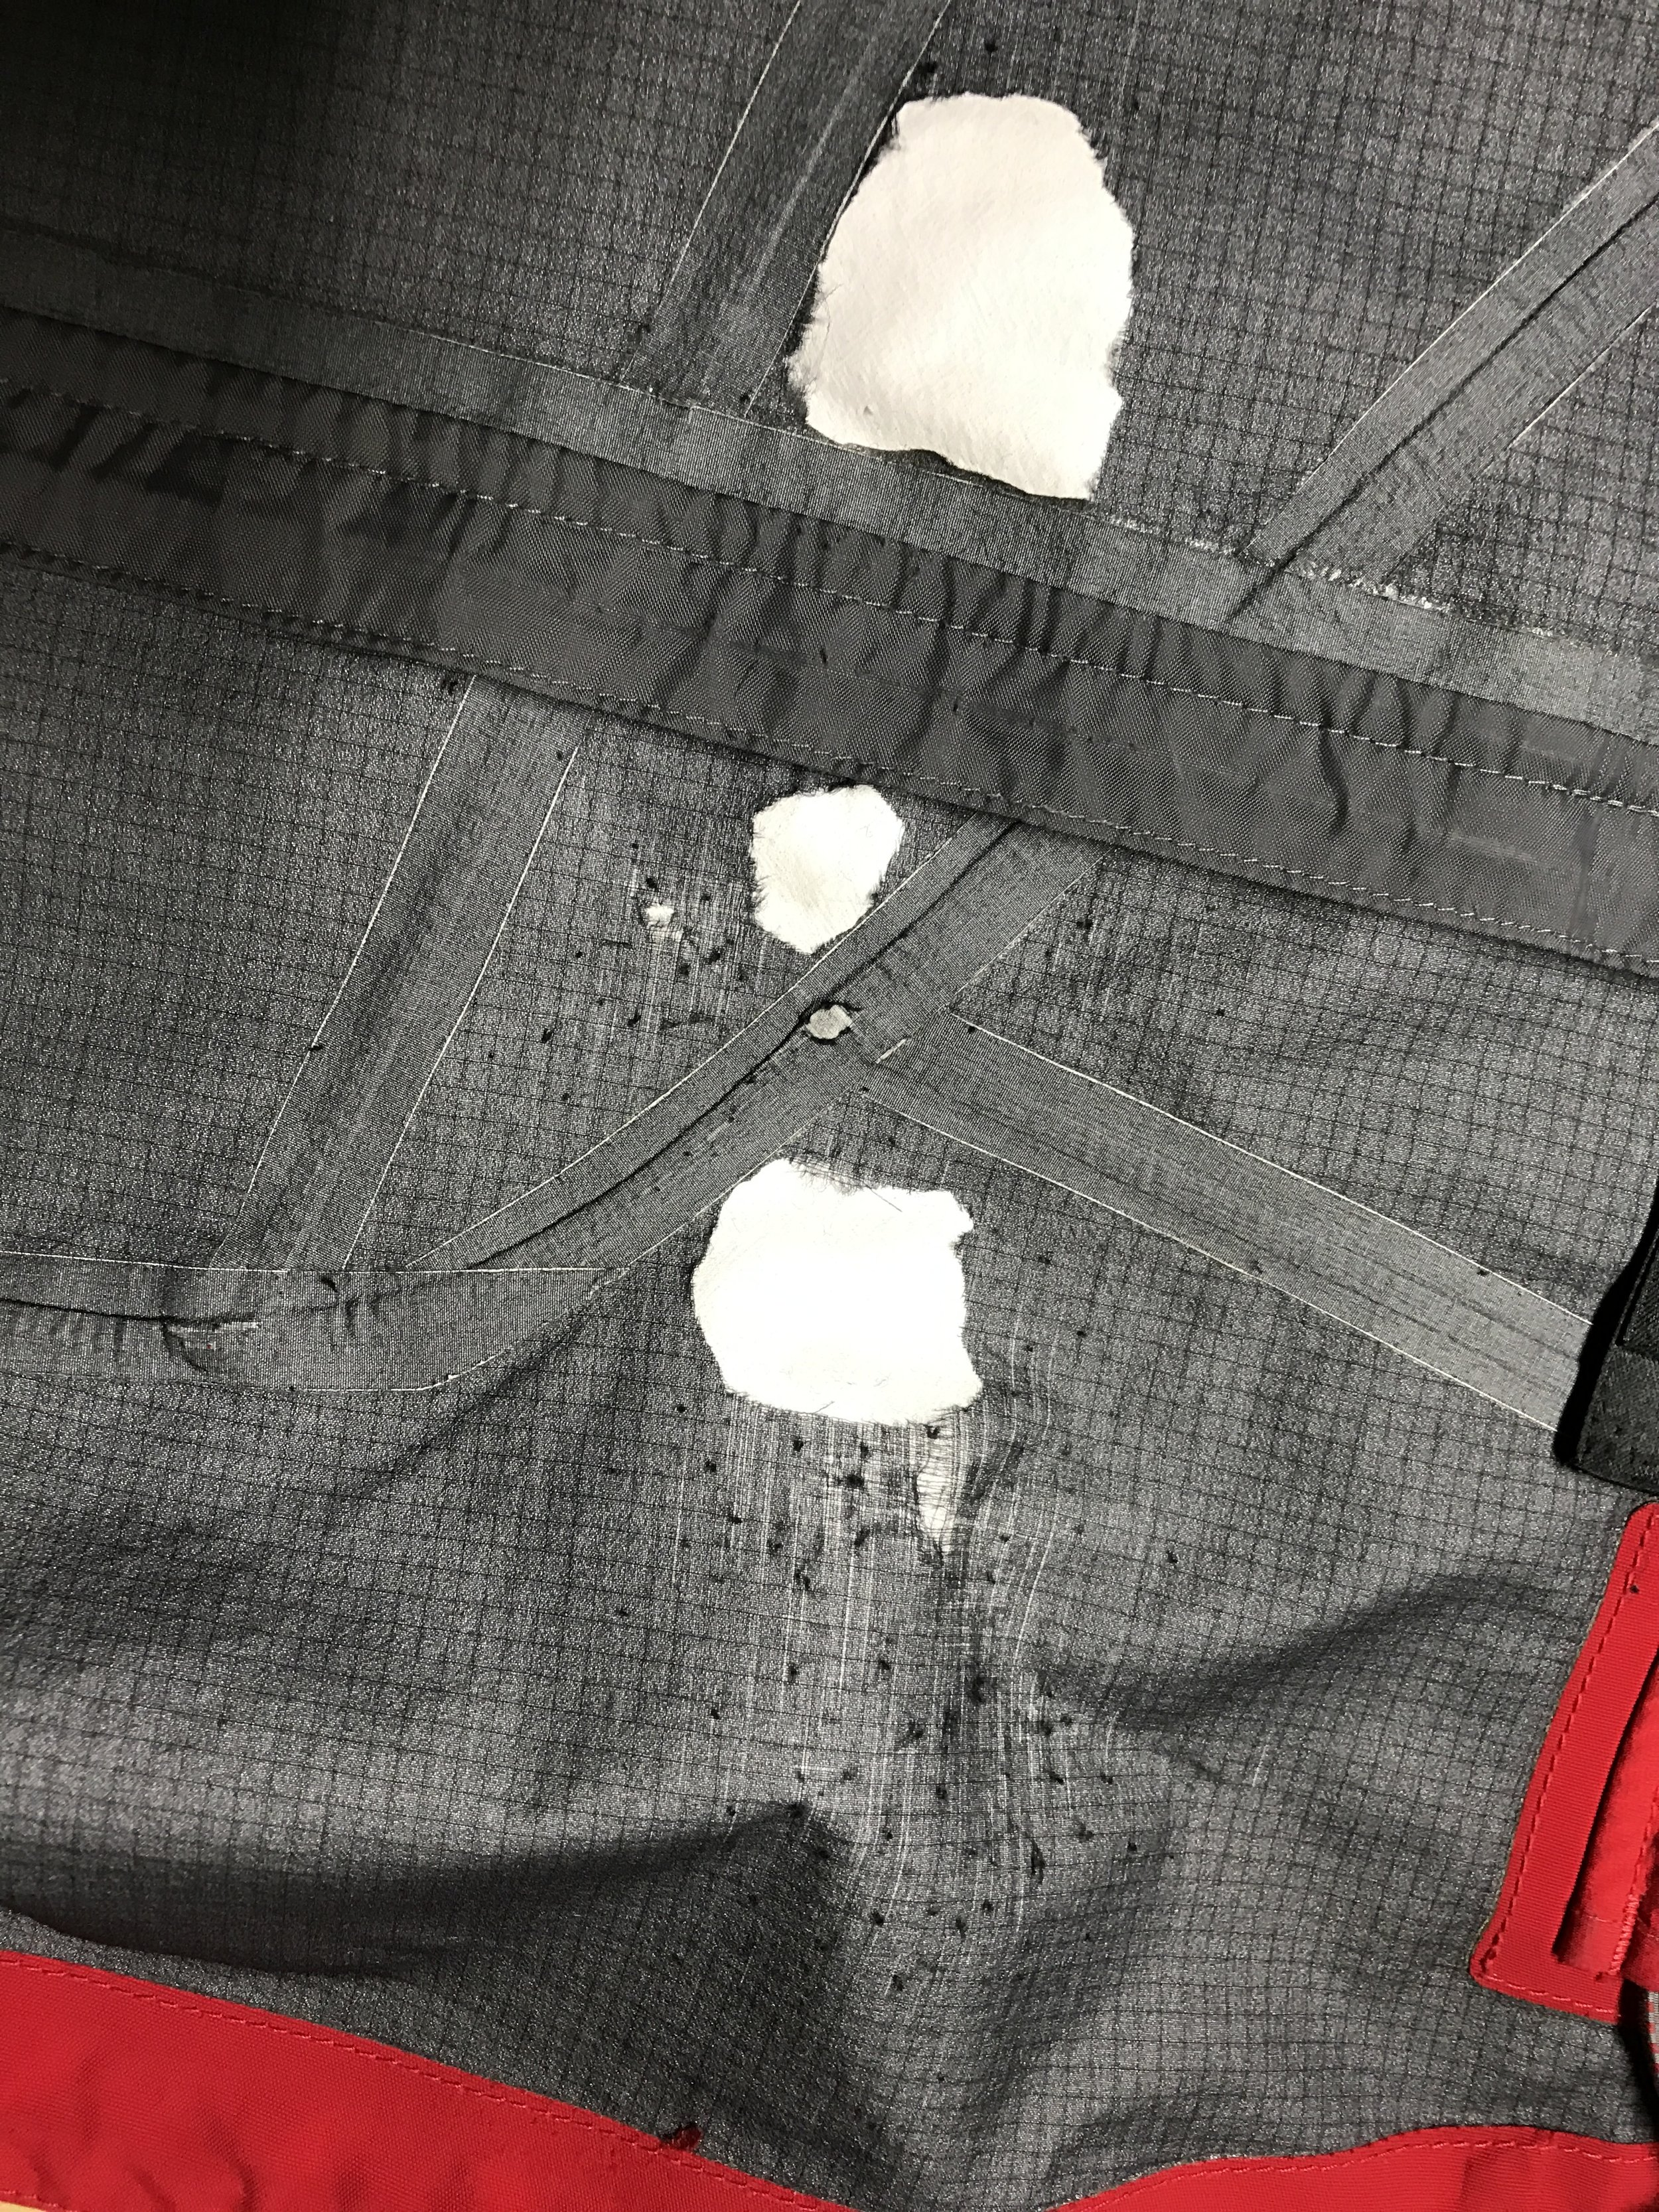 The protective tricot liner has worn through on this ski patrol uniform after full time use with a pack.